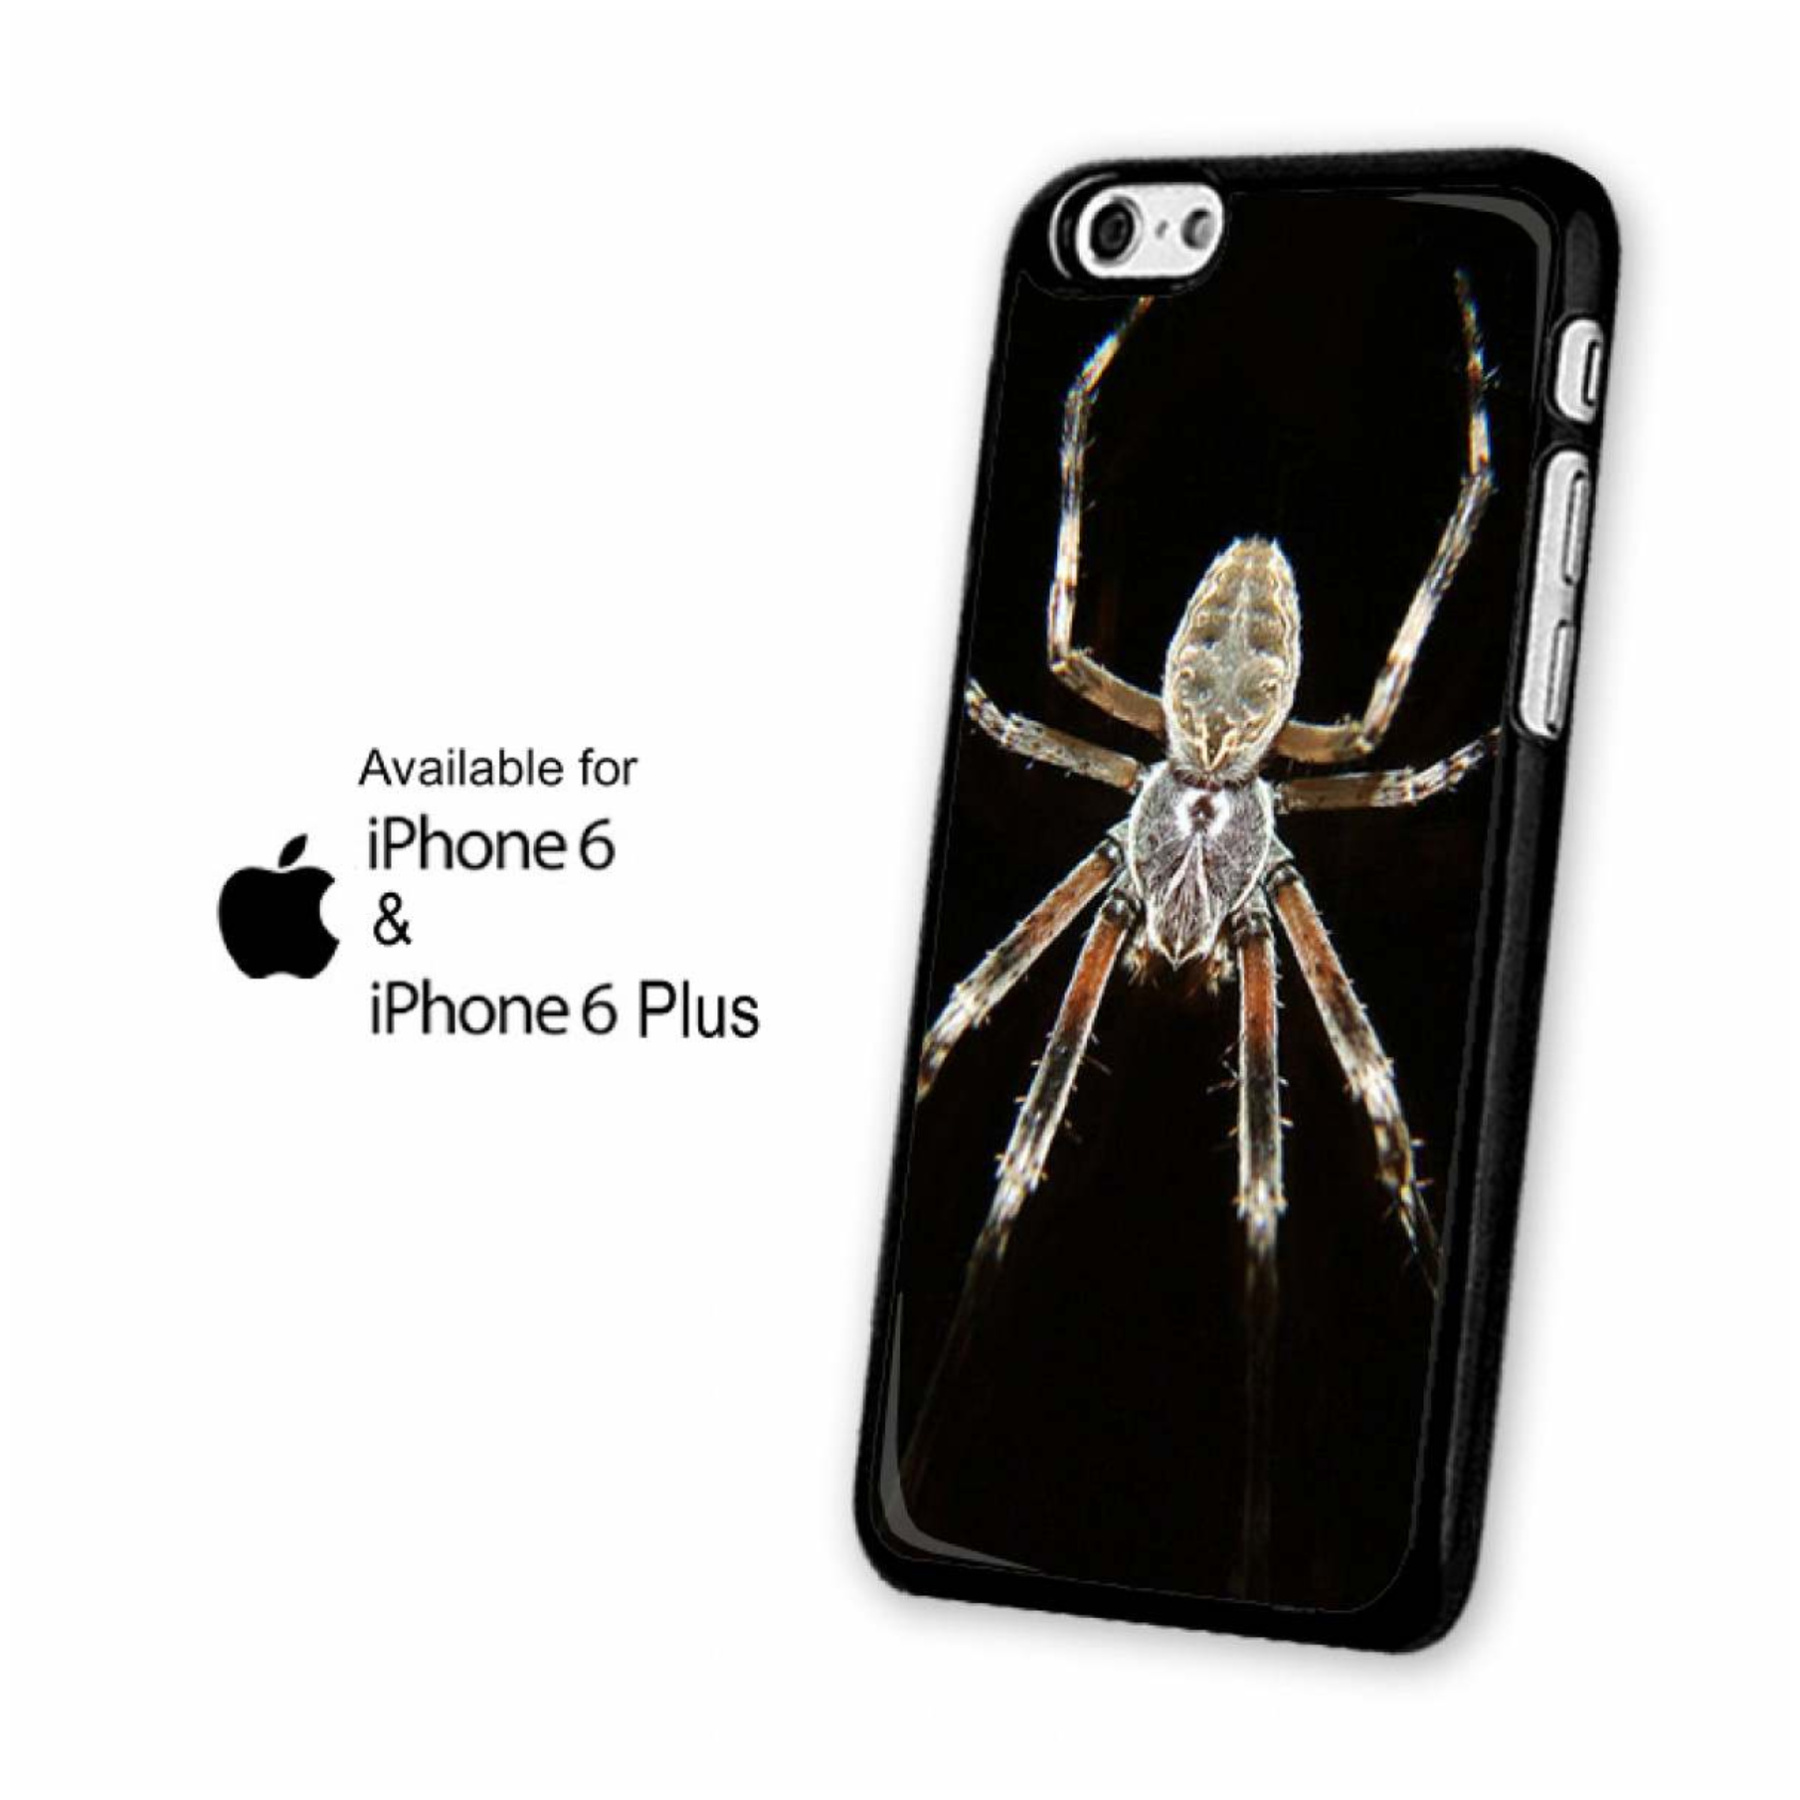 Spider Black Widow Iphone 6 Plus 5.5 Inch Case